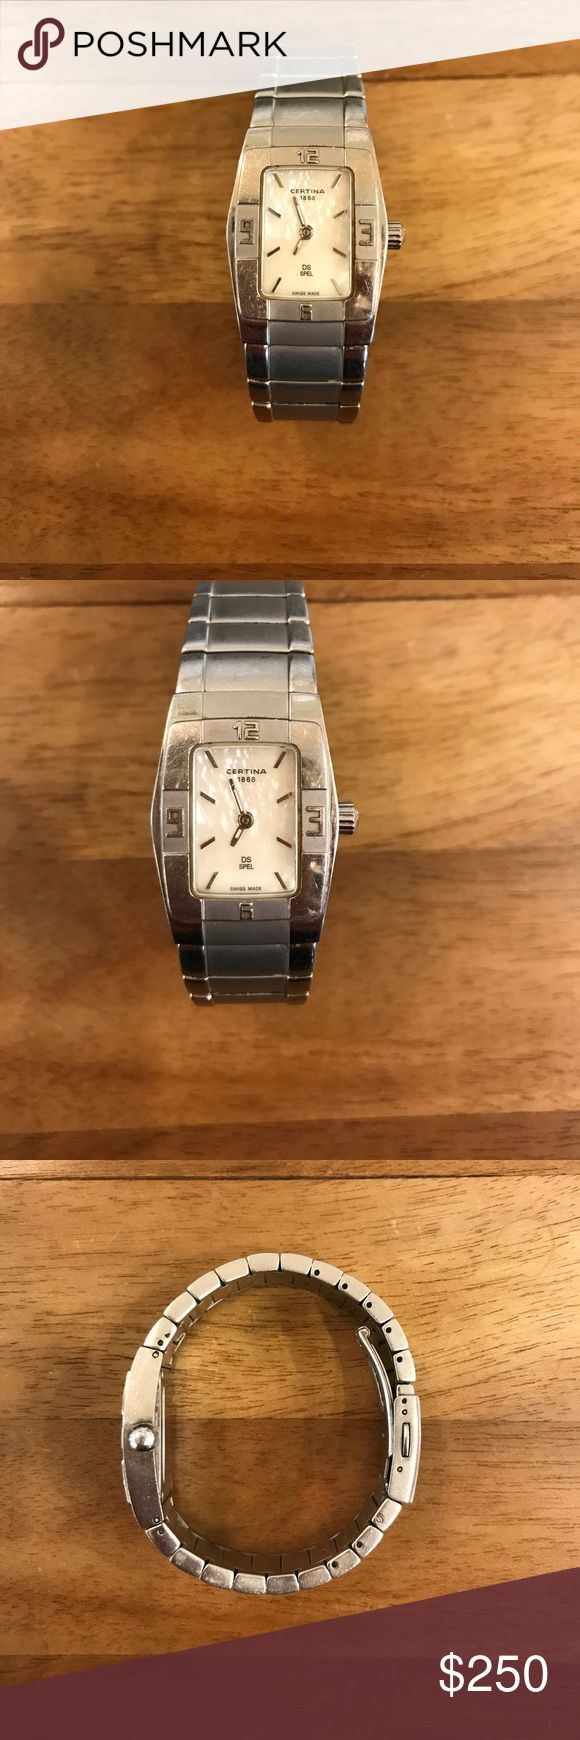 Certina watch Stainless steel, worn but in good condition. Certina Accessories Watches